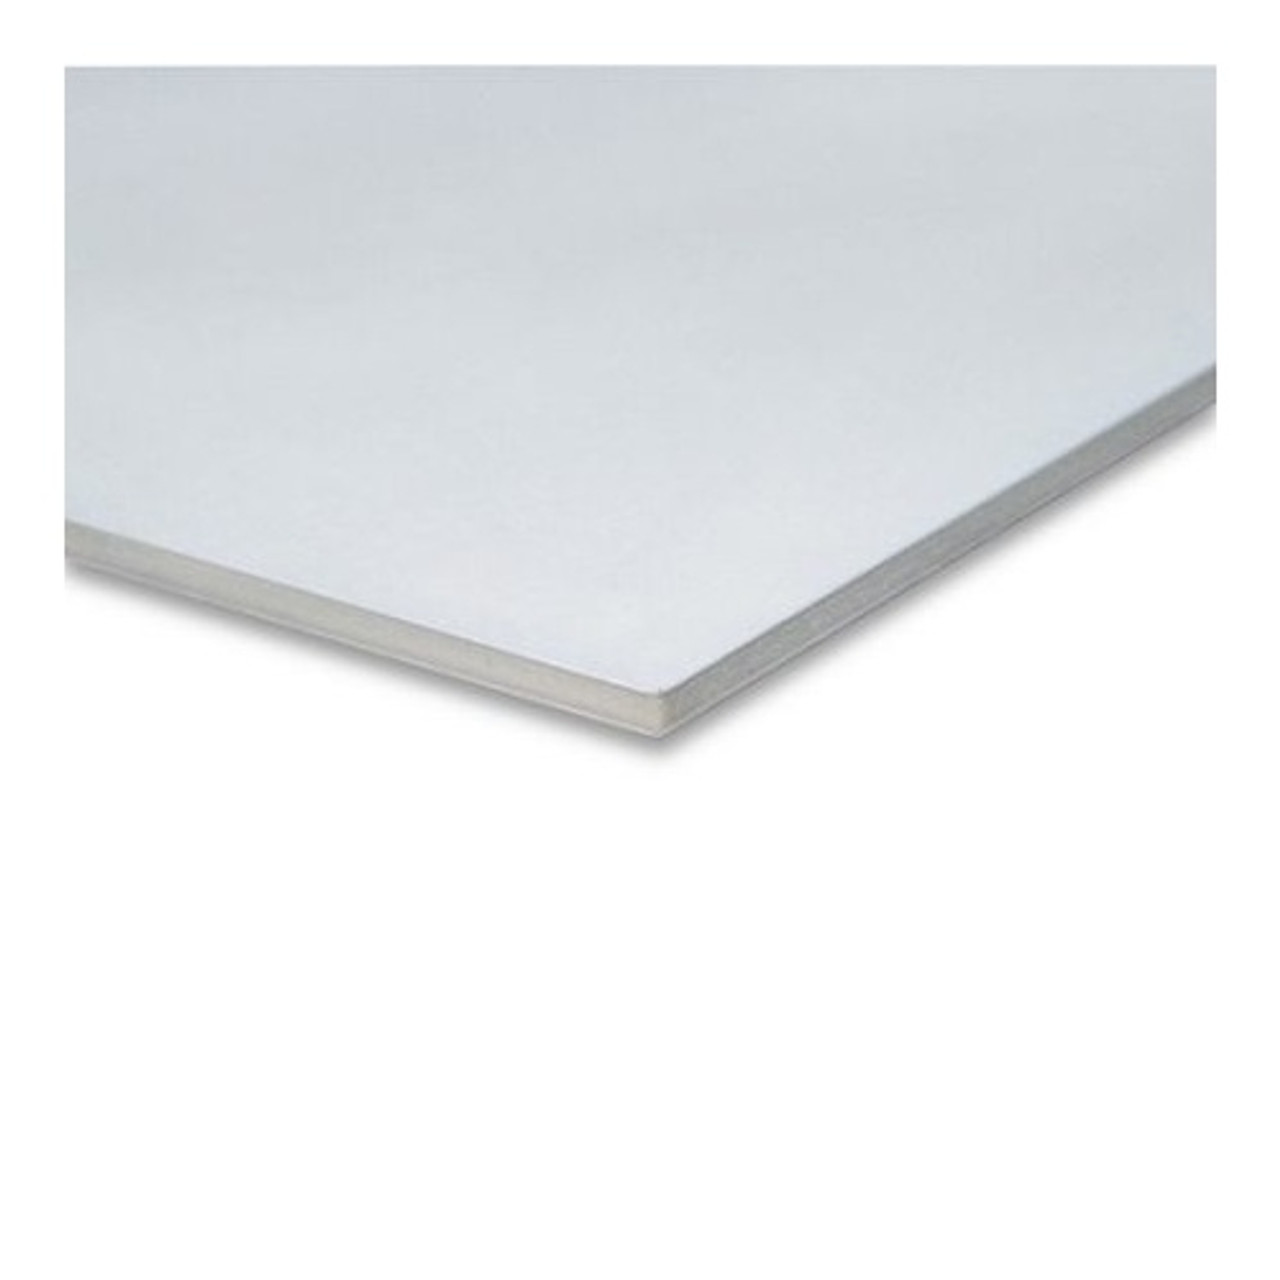 Museum Quality Acid Free Foamcore 4' x 8' (25 pc Case)